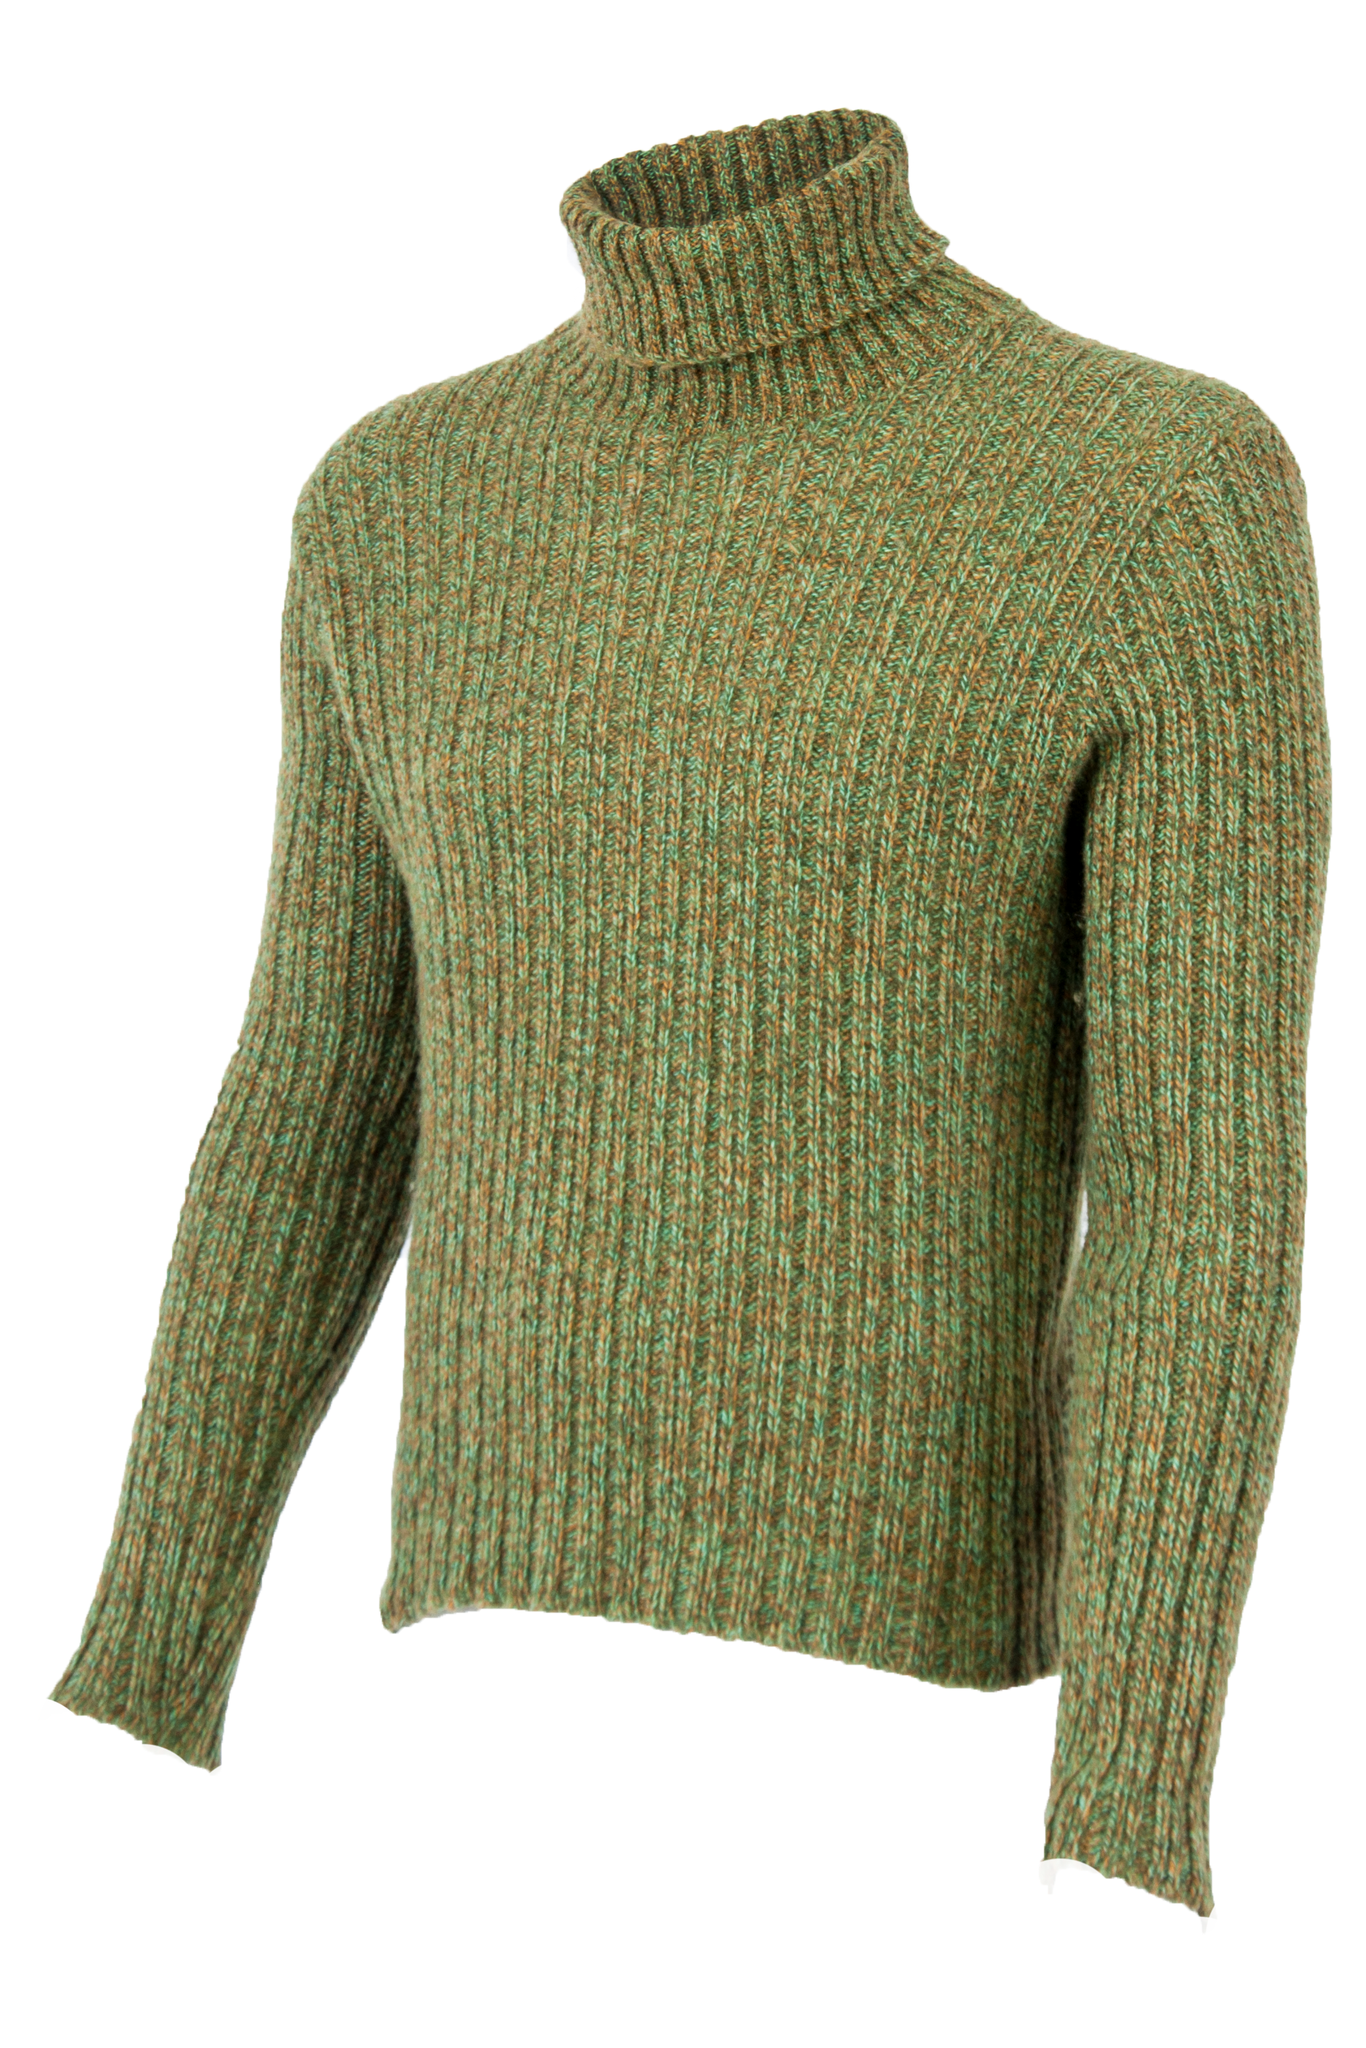 green turtleneck sweater with ribbing